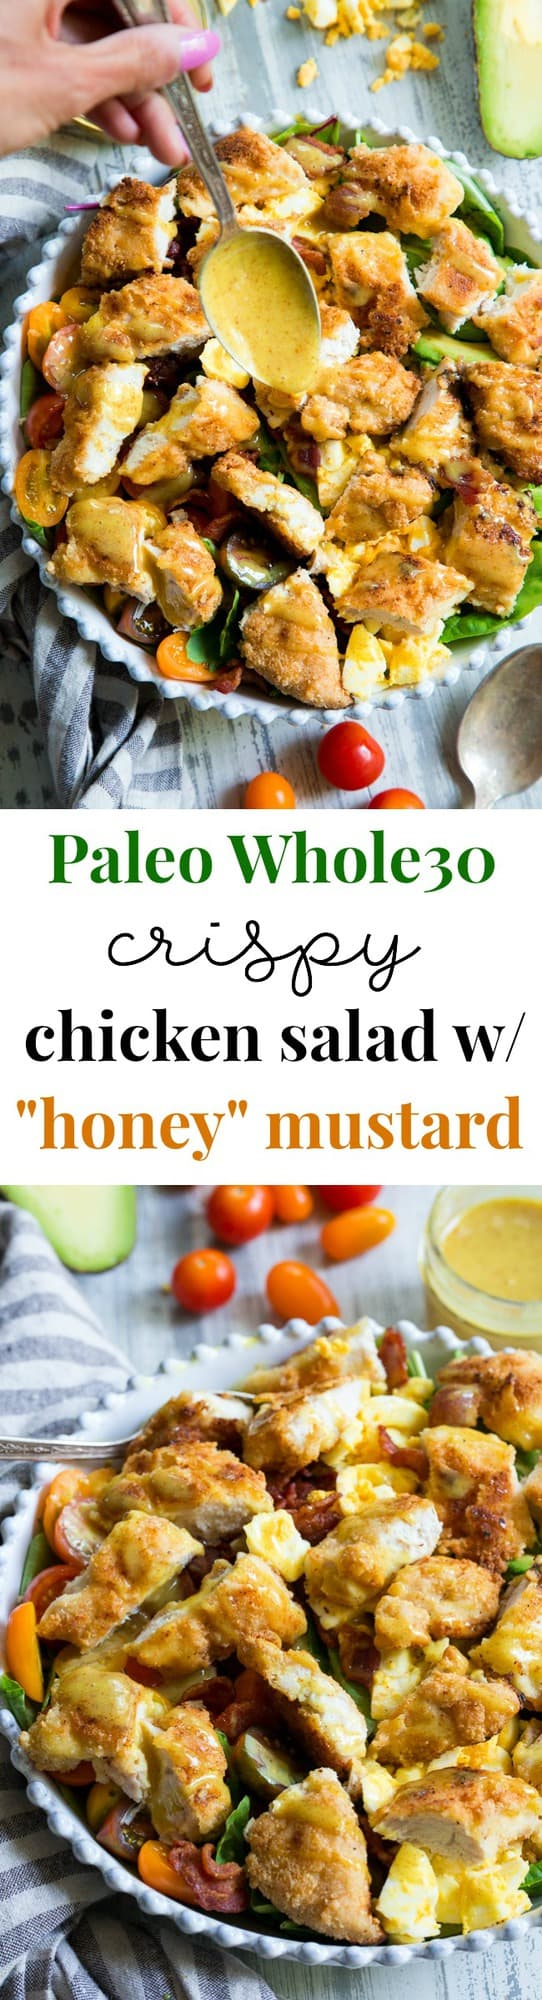 "This crispy chicken salad is packed with all your favorites and topped with a perfectly sweet tangy honey mustard dressing! This is the salad I grew up loving, finally made paleo with a Whole30 option! Crispy grain-free ""breaded"" chicken is tossed with greens, bacon, chopped eggs, tomatoes and avocado to make it just like the classic."